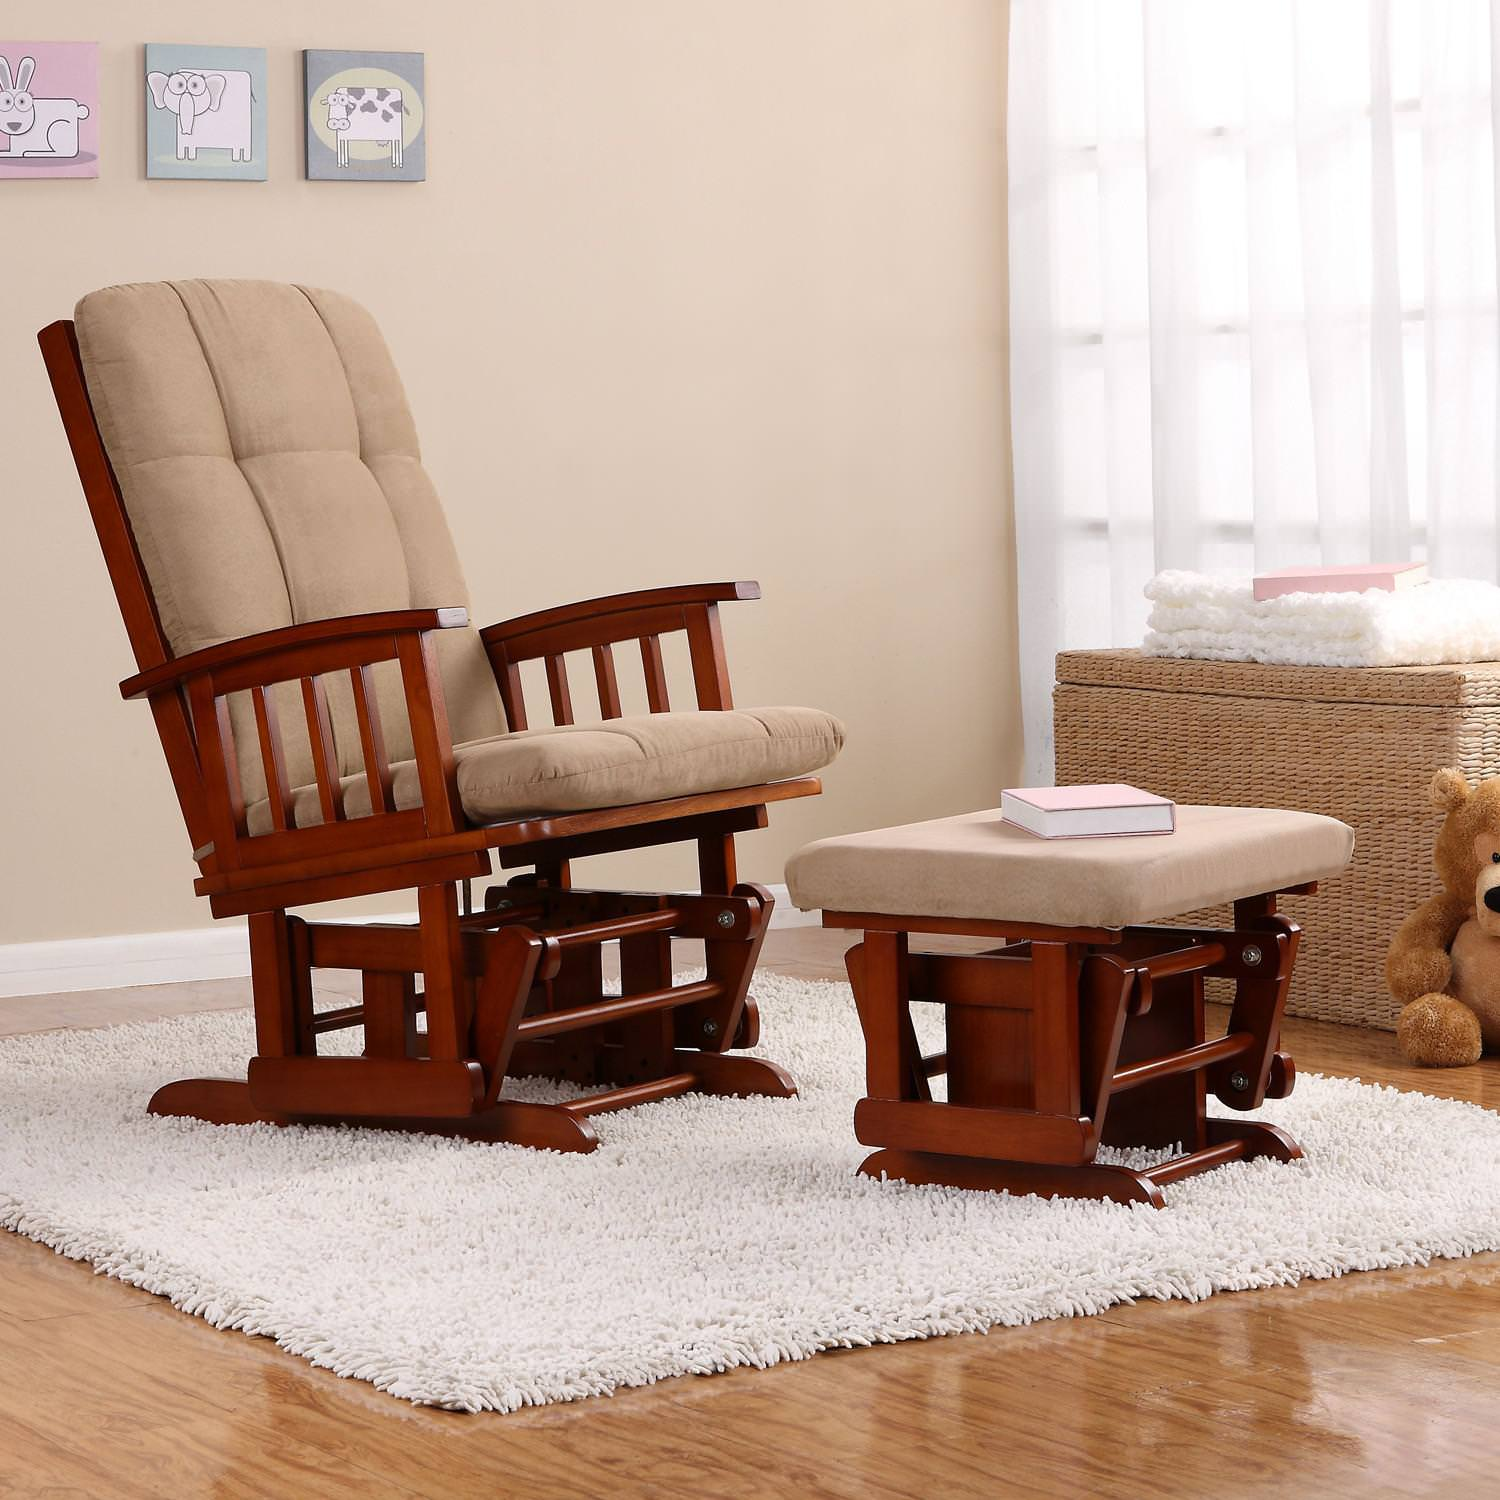 Image of: Black Floral Upholstered Rocking Chairs